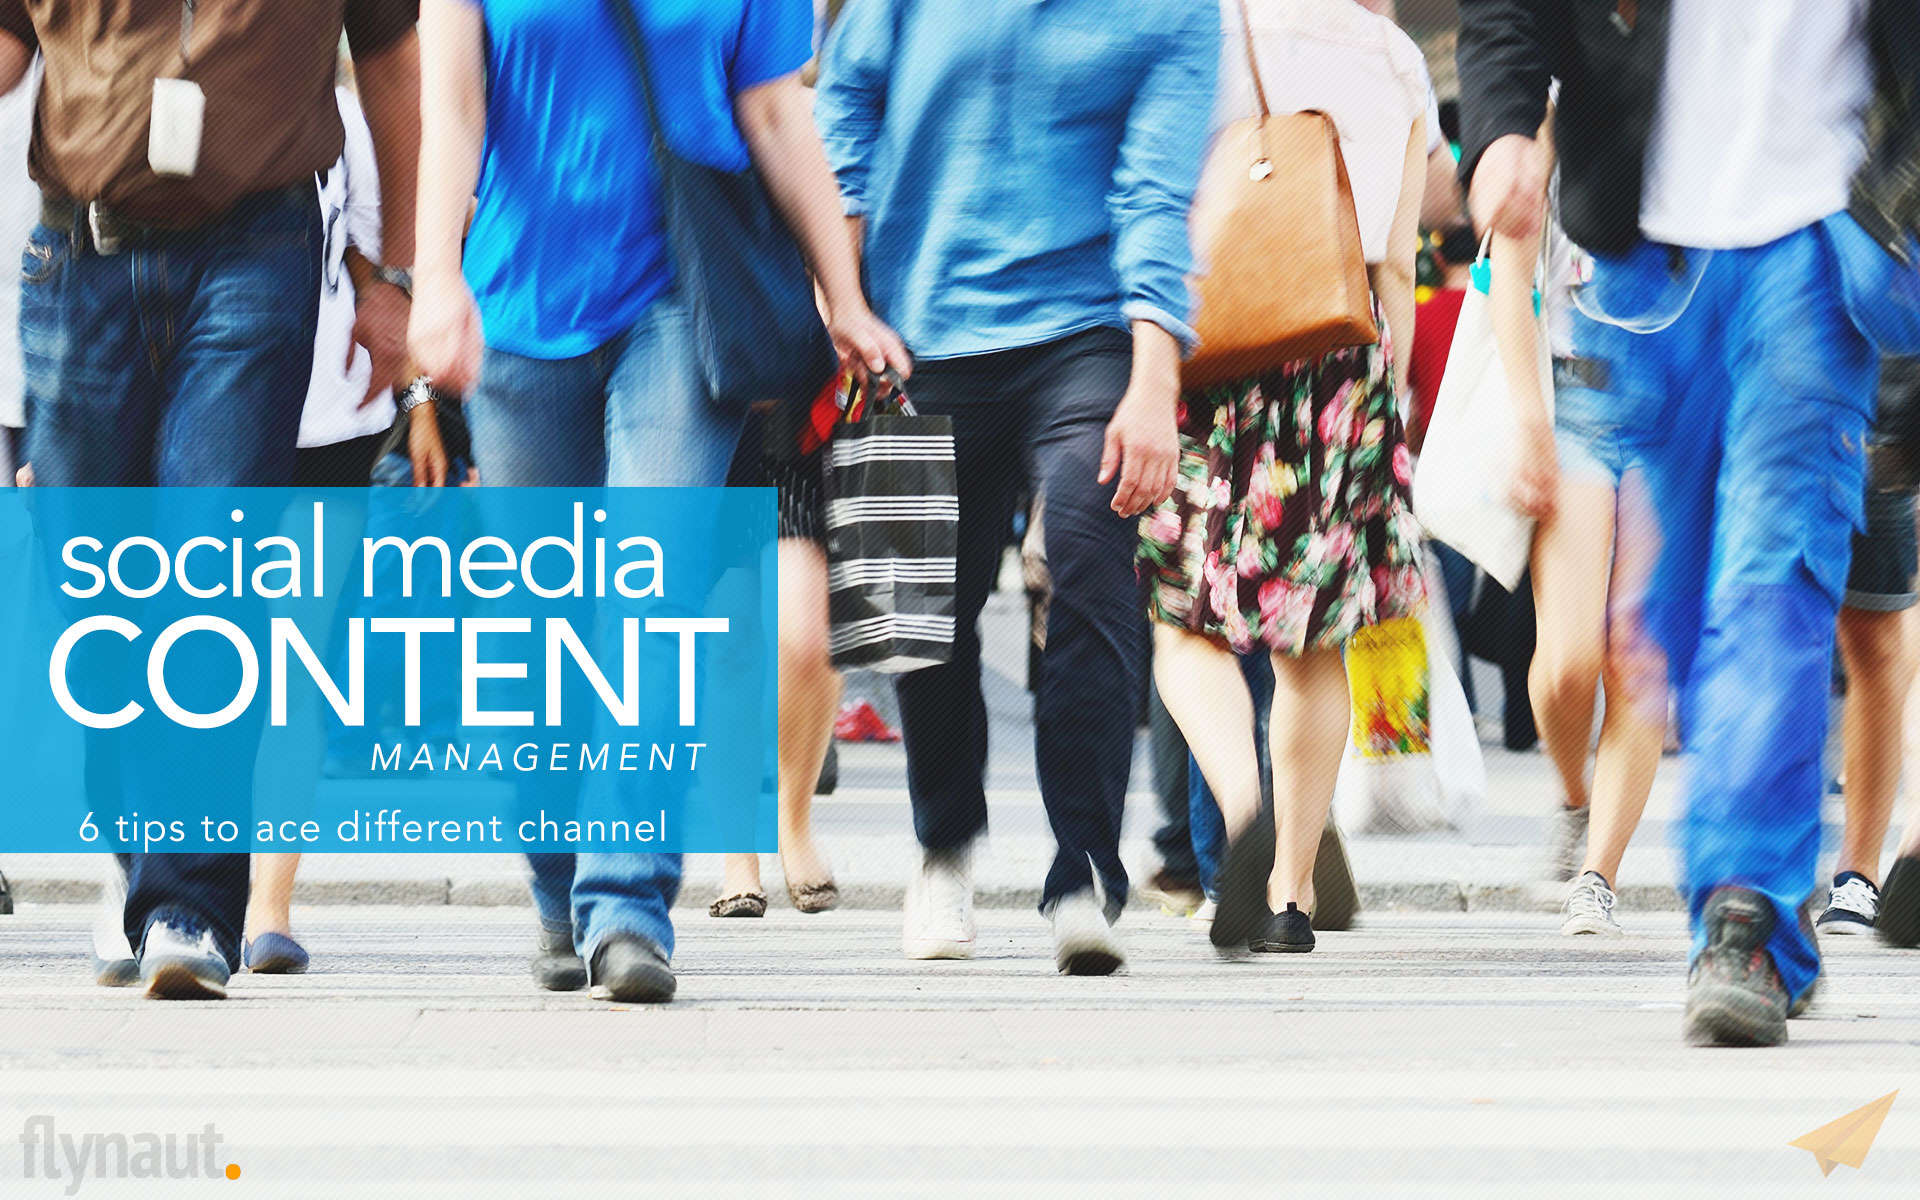 Social Media Content Management – 6 Tips To Ace Different Channels